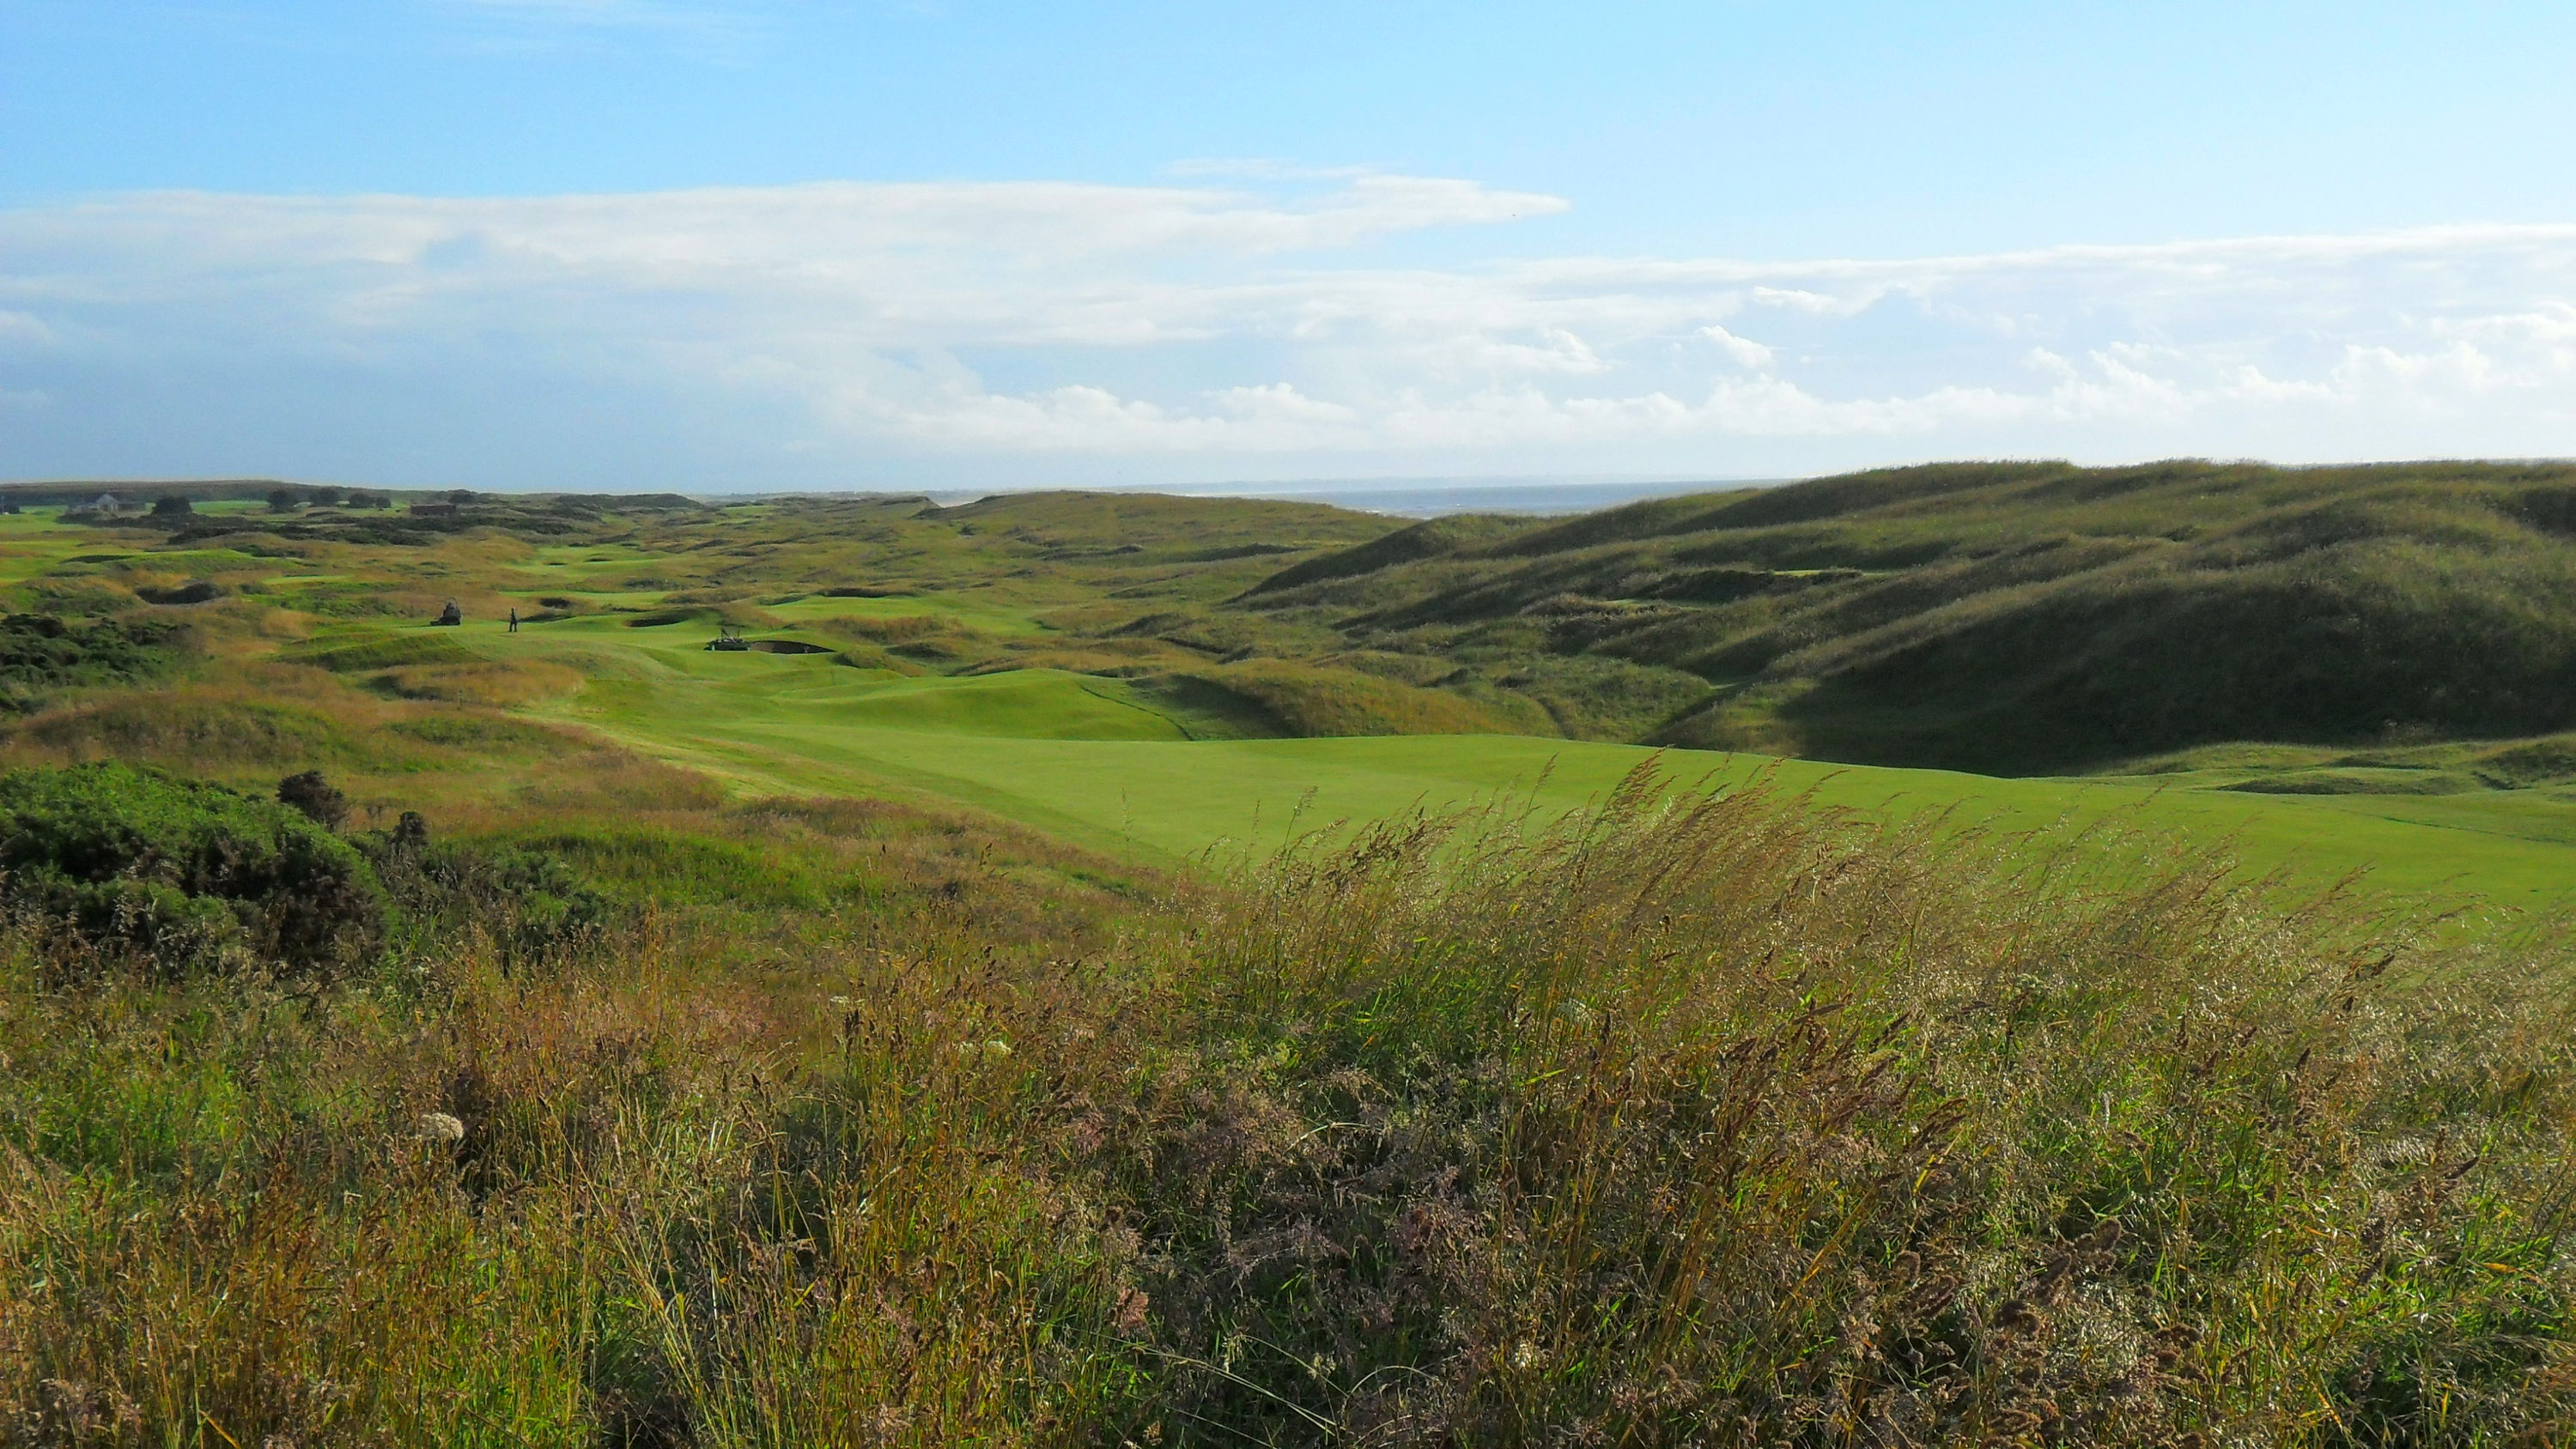 Royal aberdeen golf club cover picture